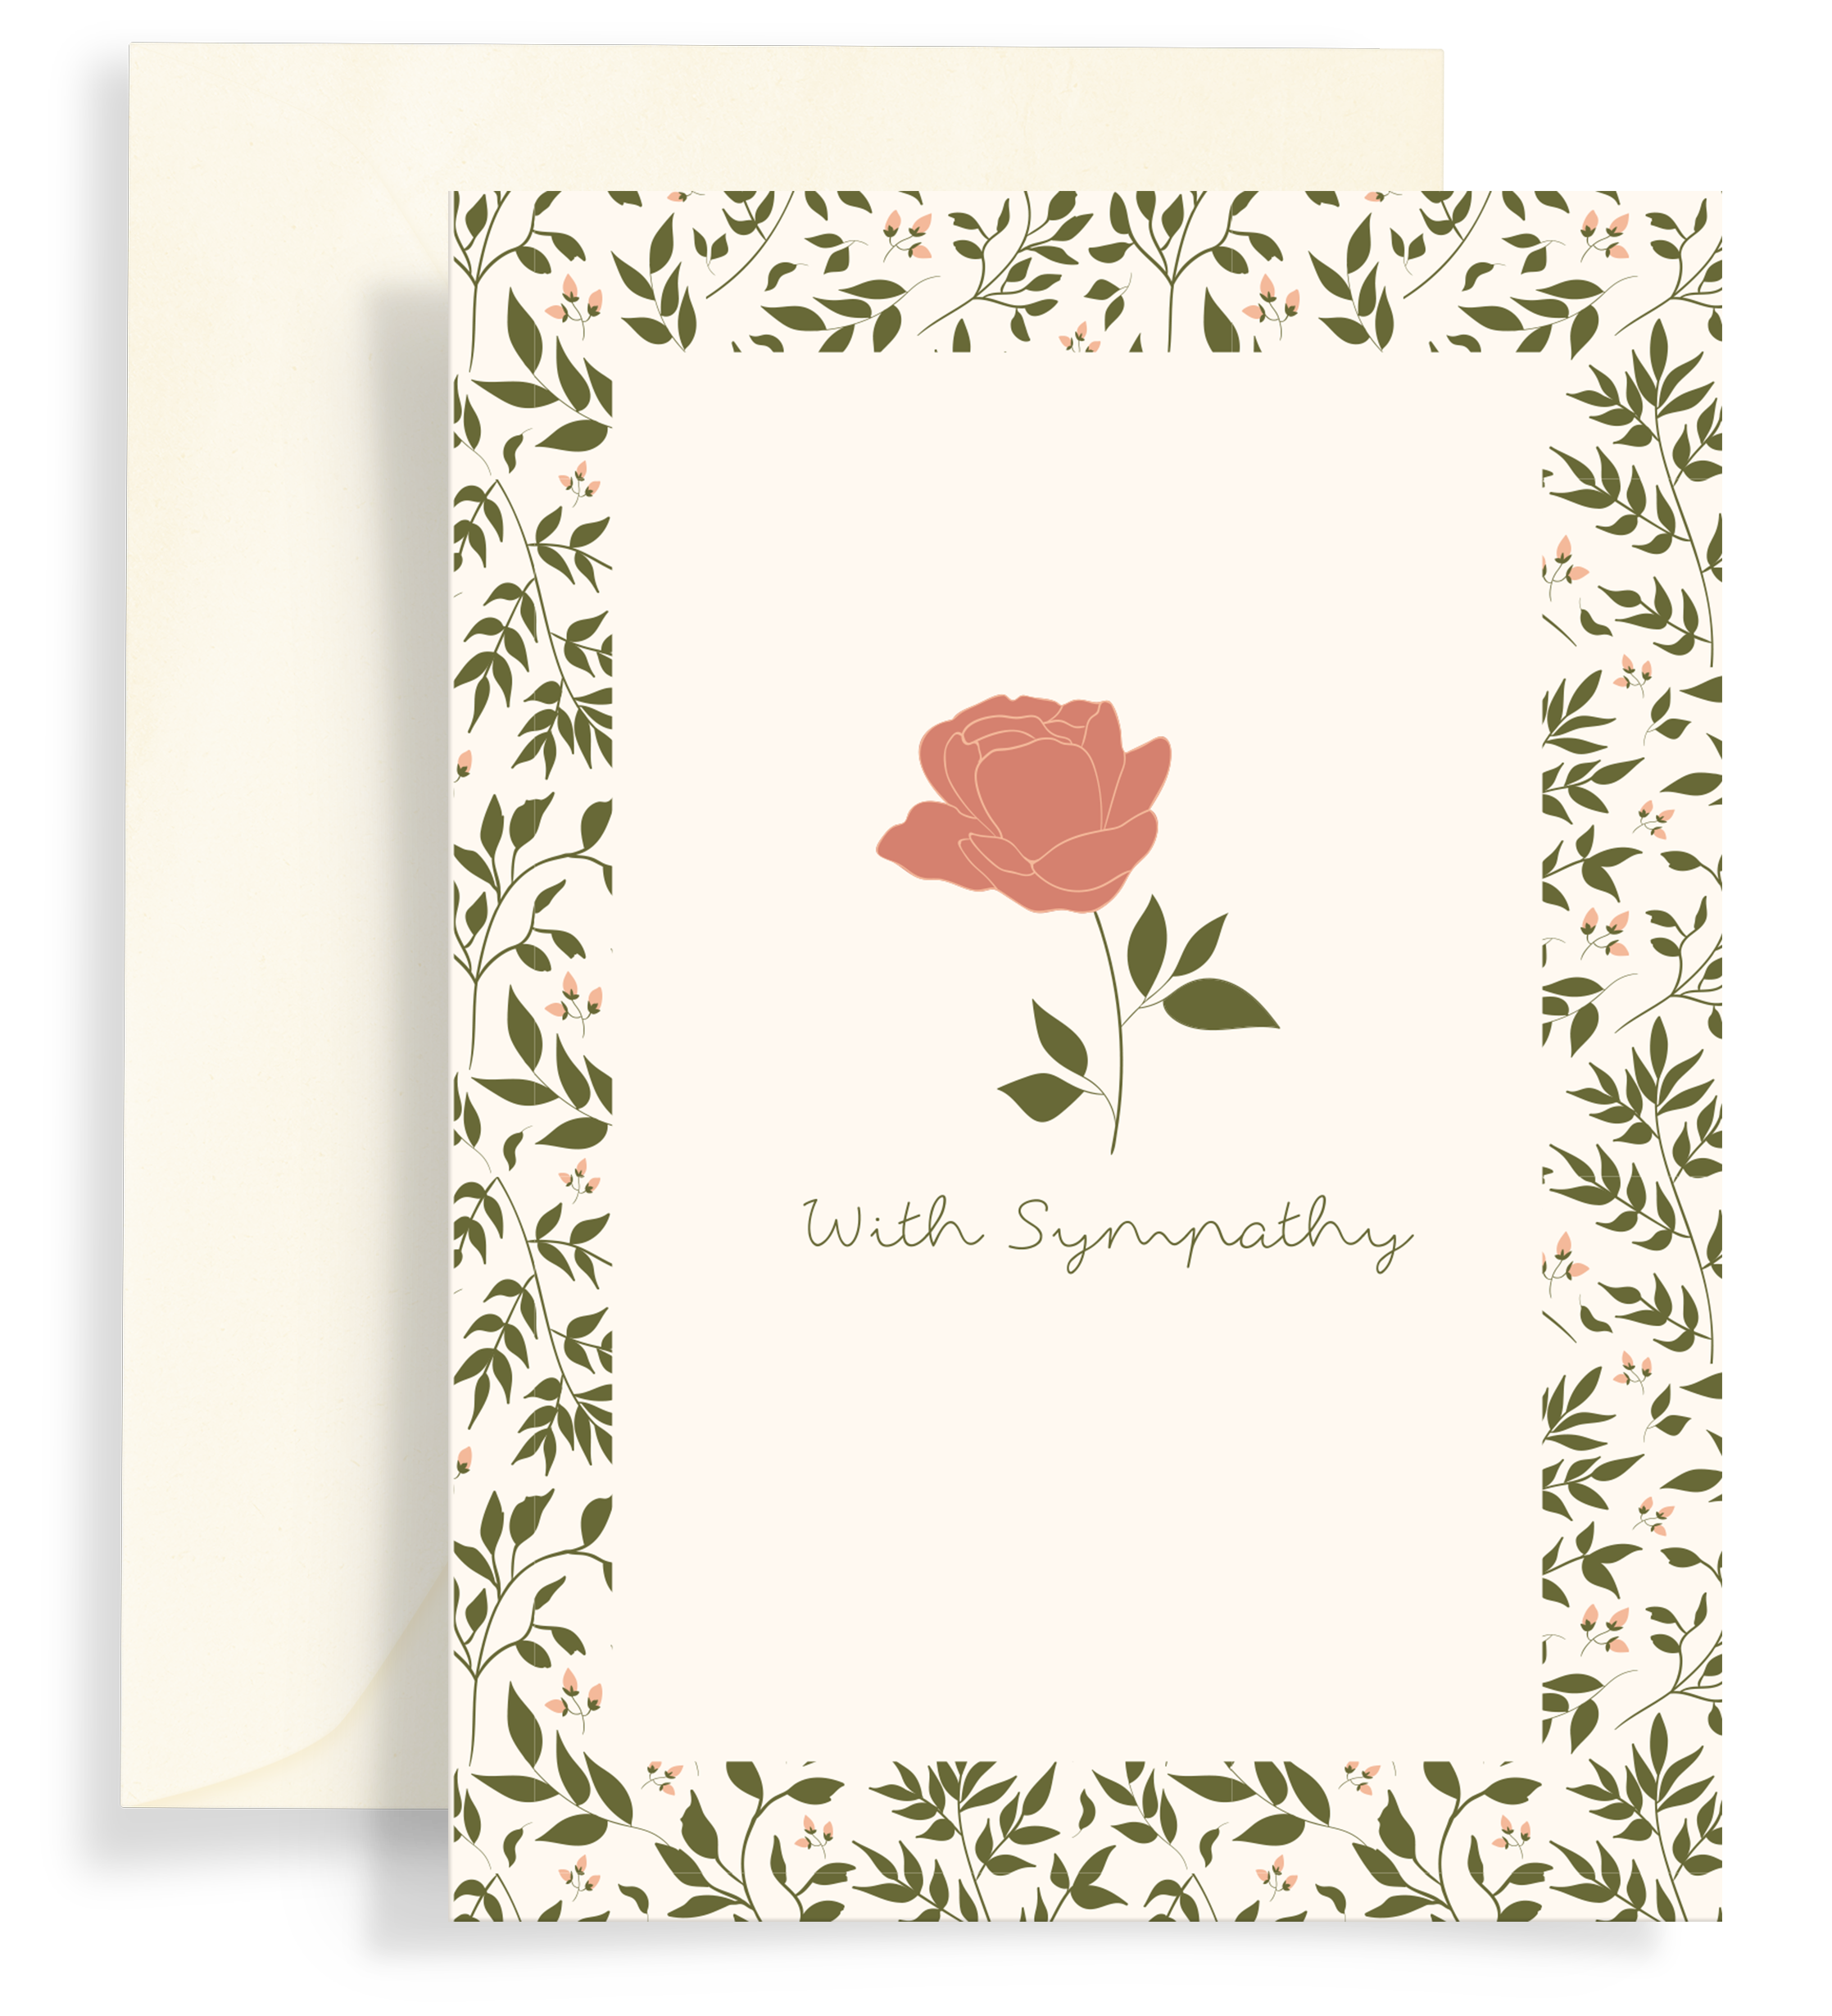 Illustrated greeting card with a beautiful single rose illustrated and a border of foliage on a cream background. Text says 'with sympathy'